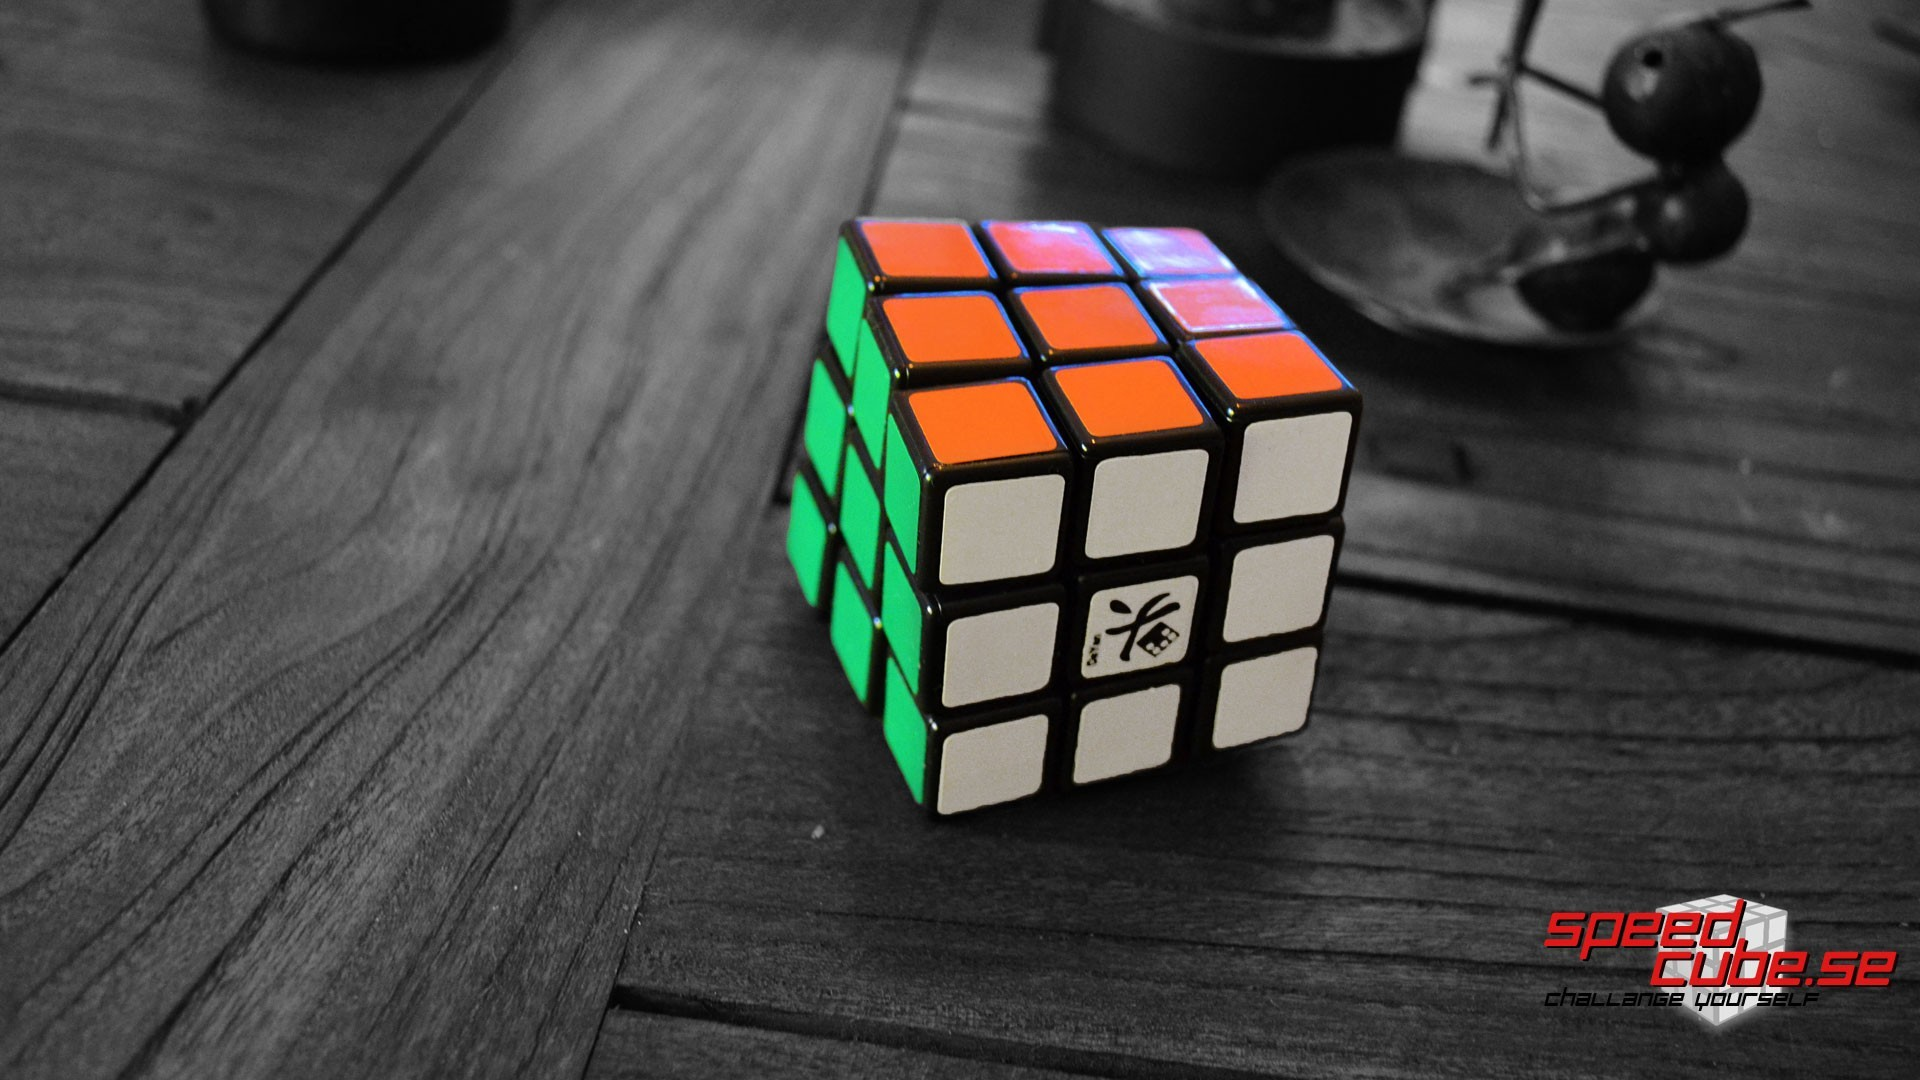 rubiks cube wallpapers ·①